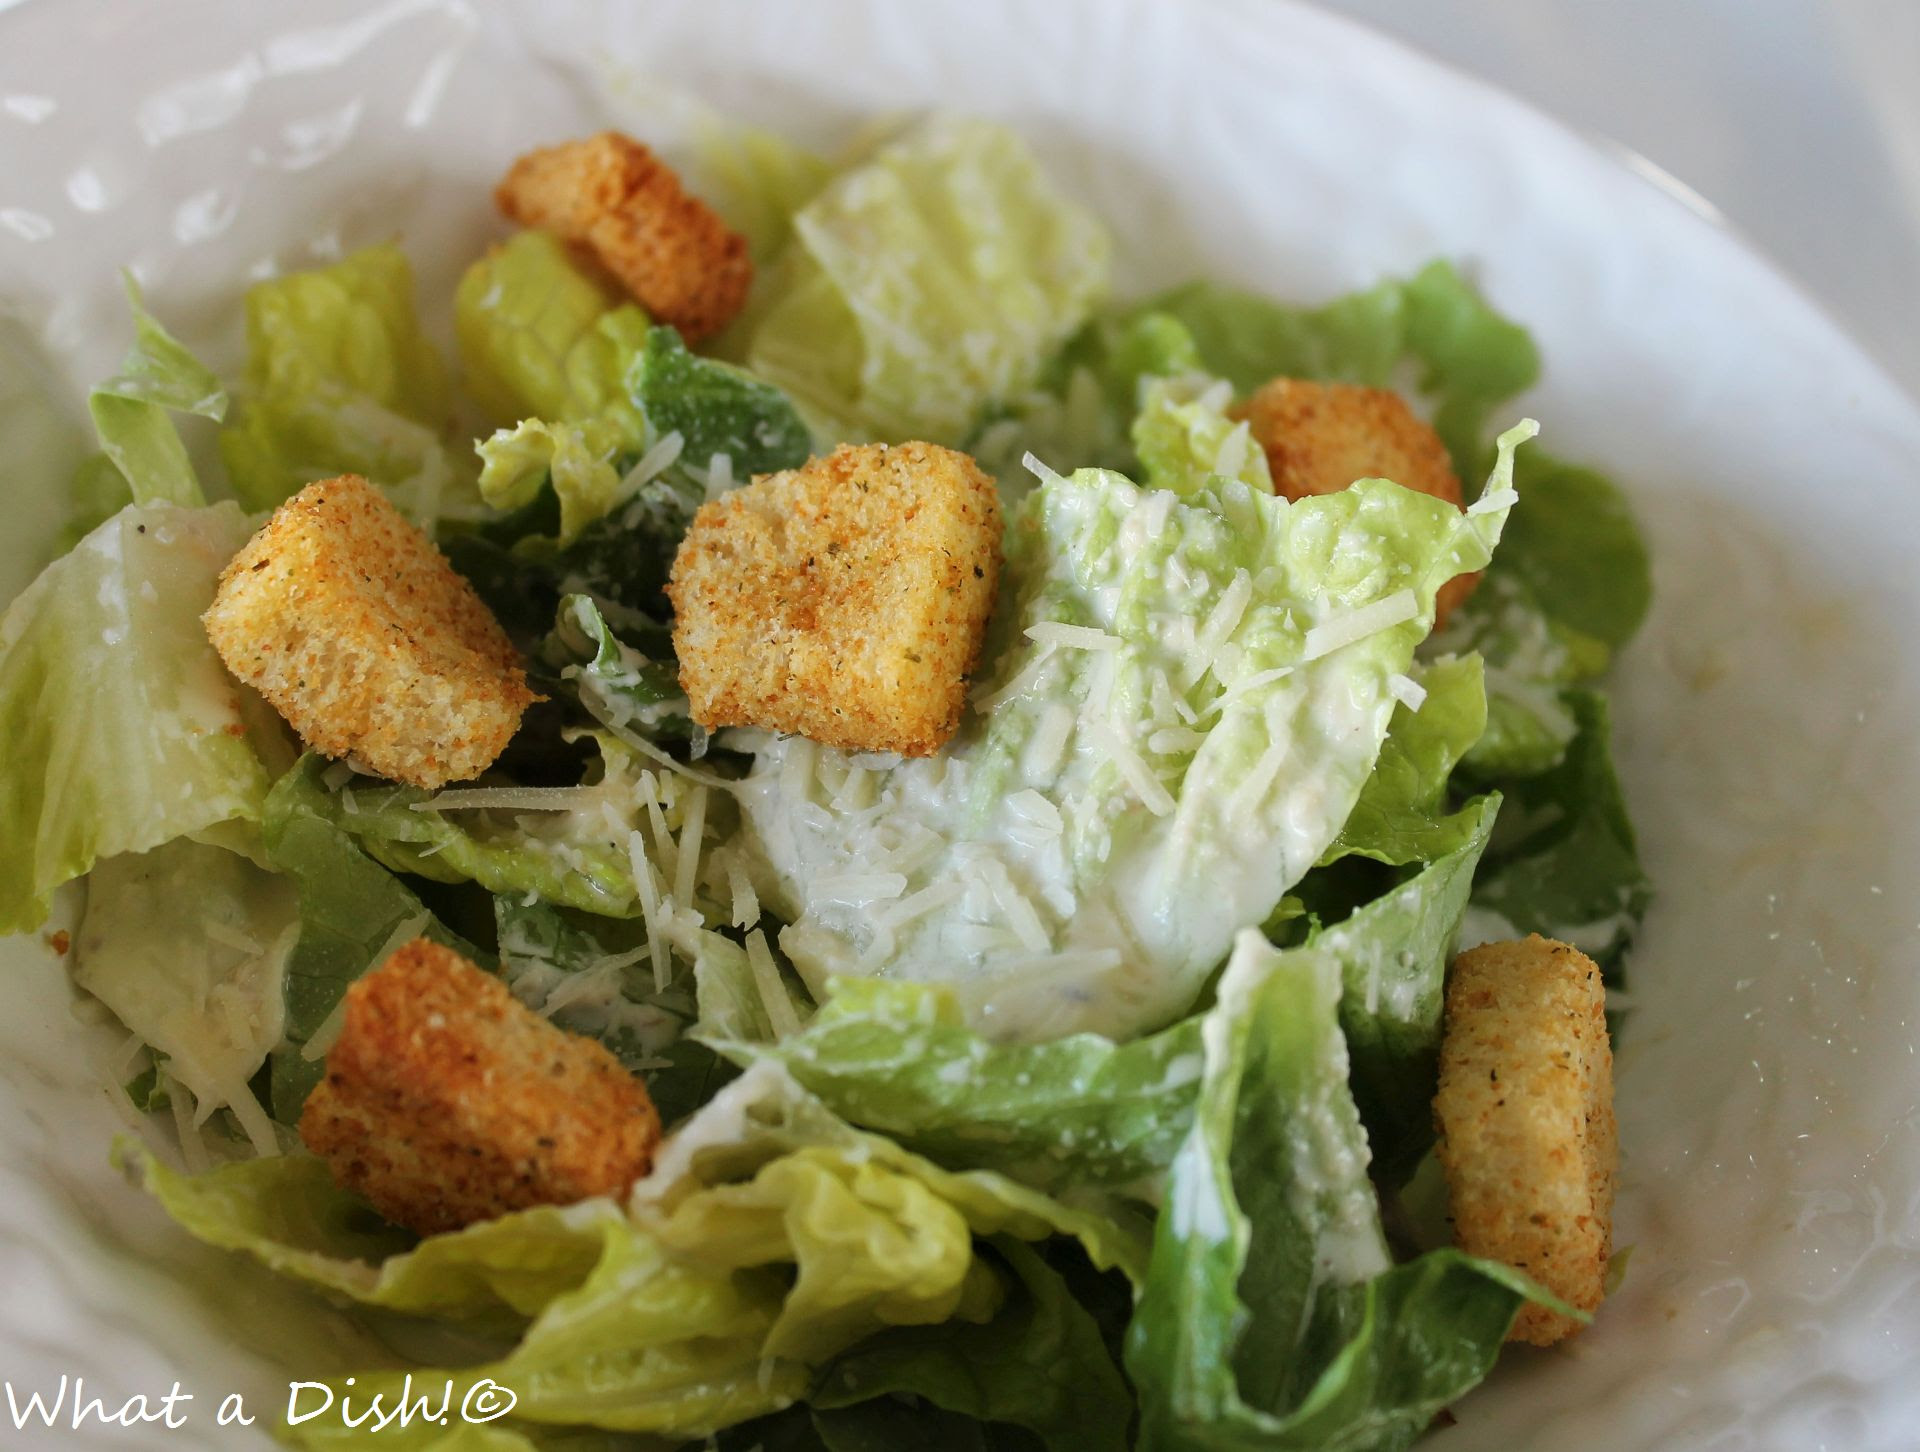 Yogurt Caesar Dressing